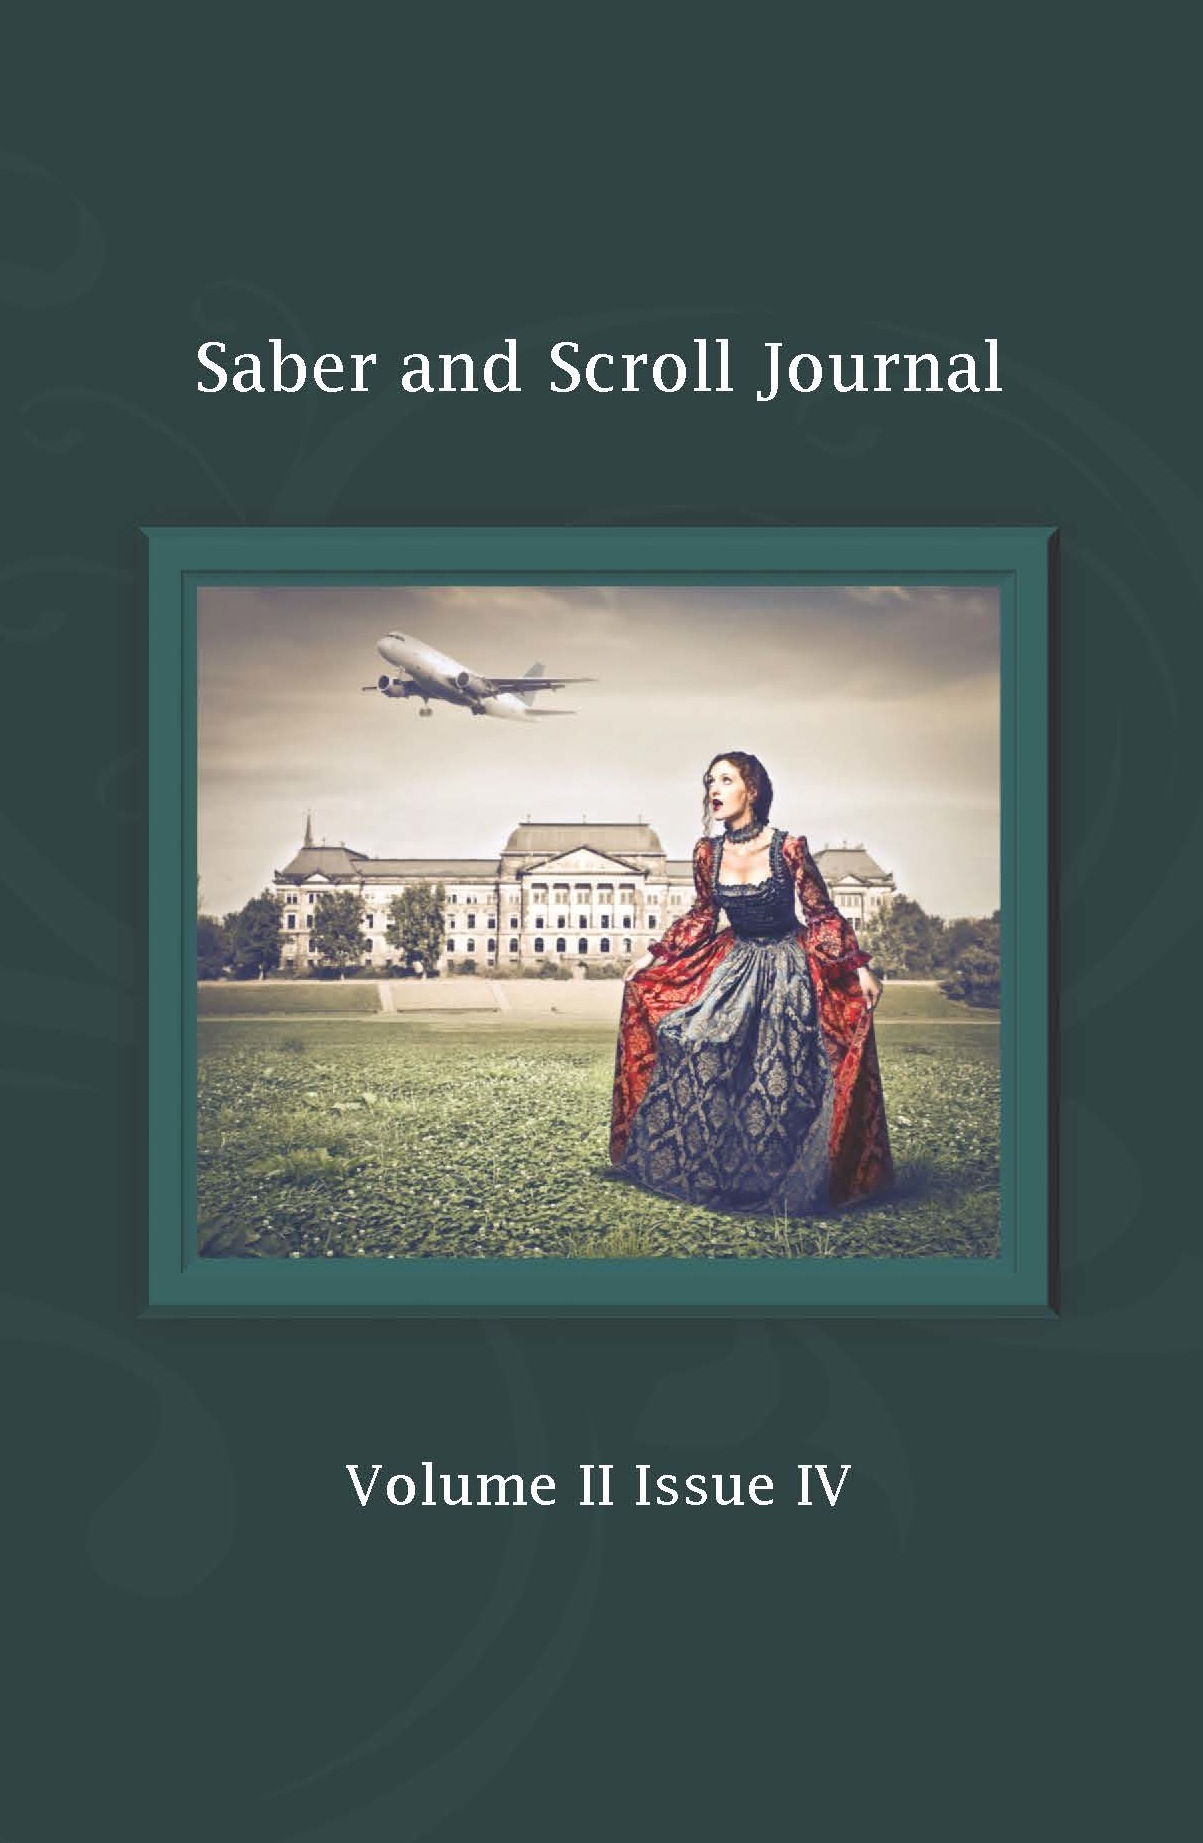 The cover image of v. 2, iss. 4 of Saber and Scroll features a woman in an 18th-century dress in front of an elegant chateau, surprised as an airplane flies overhead.